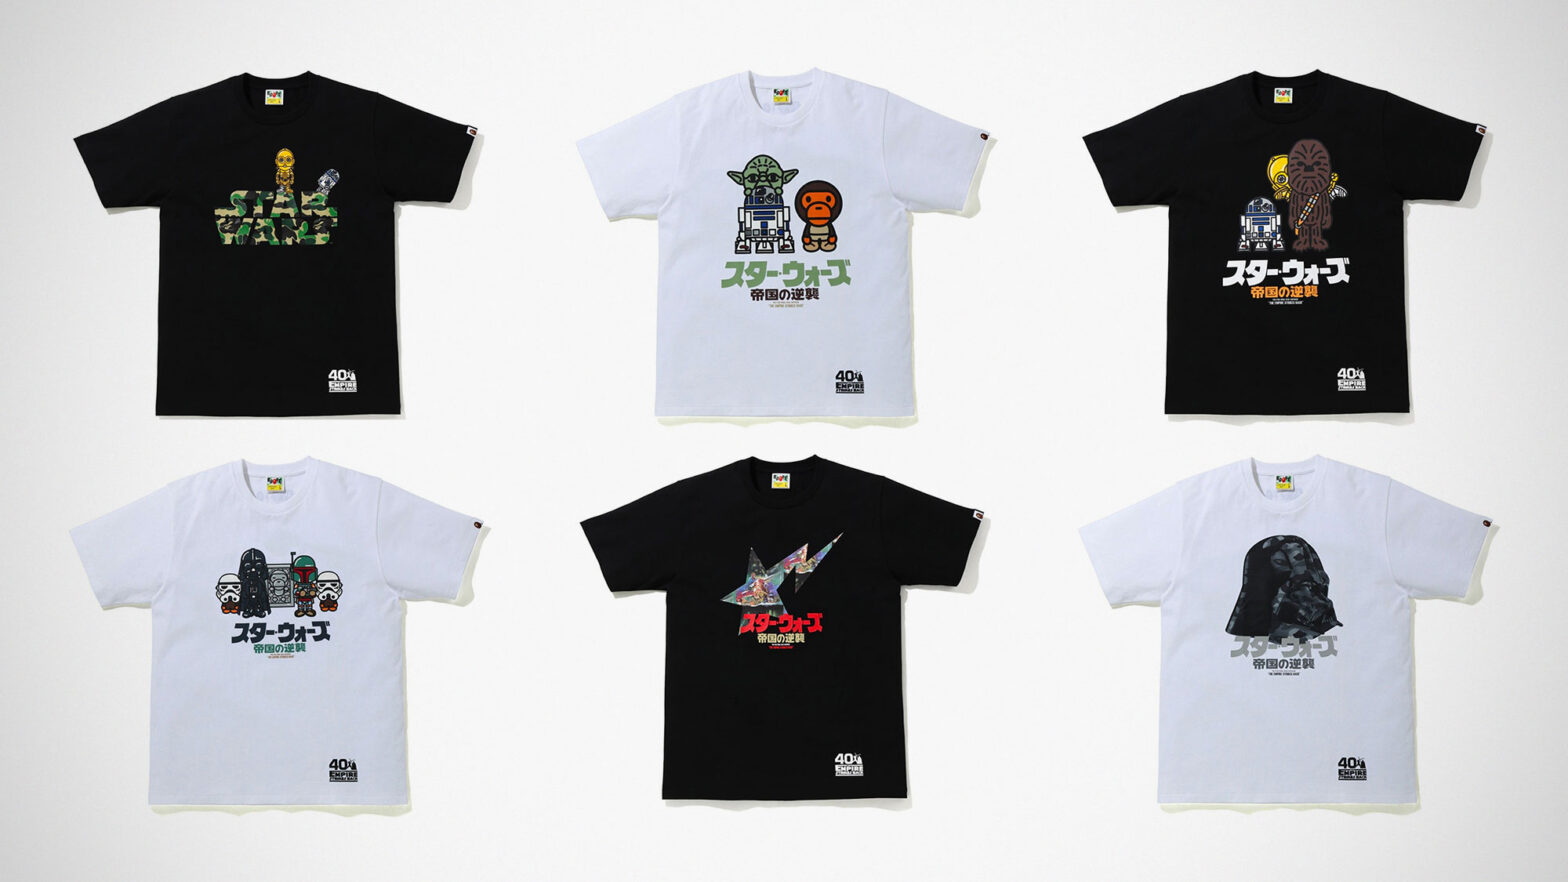 BAPE x Star Wars Empire Strikes Back Collection